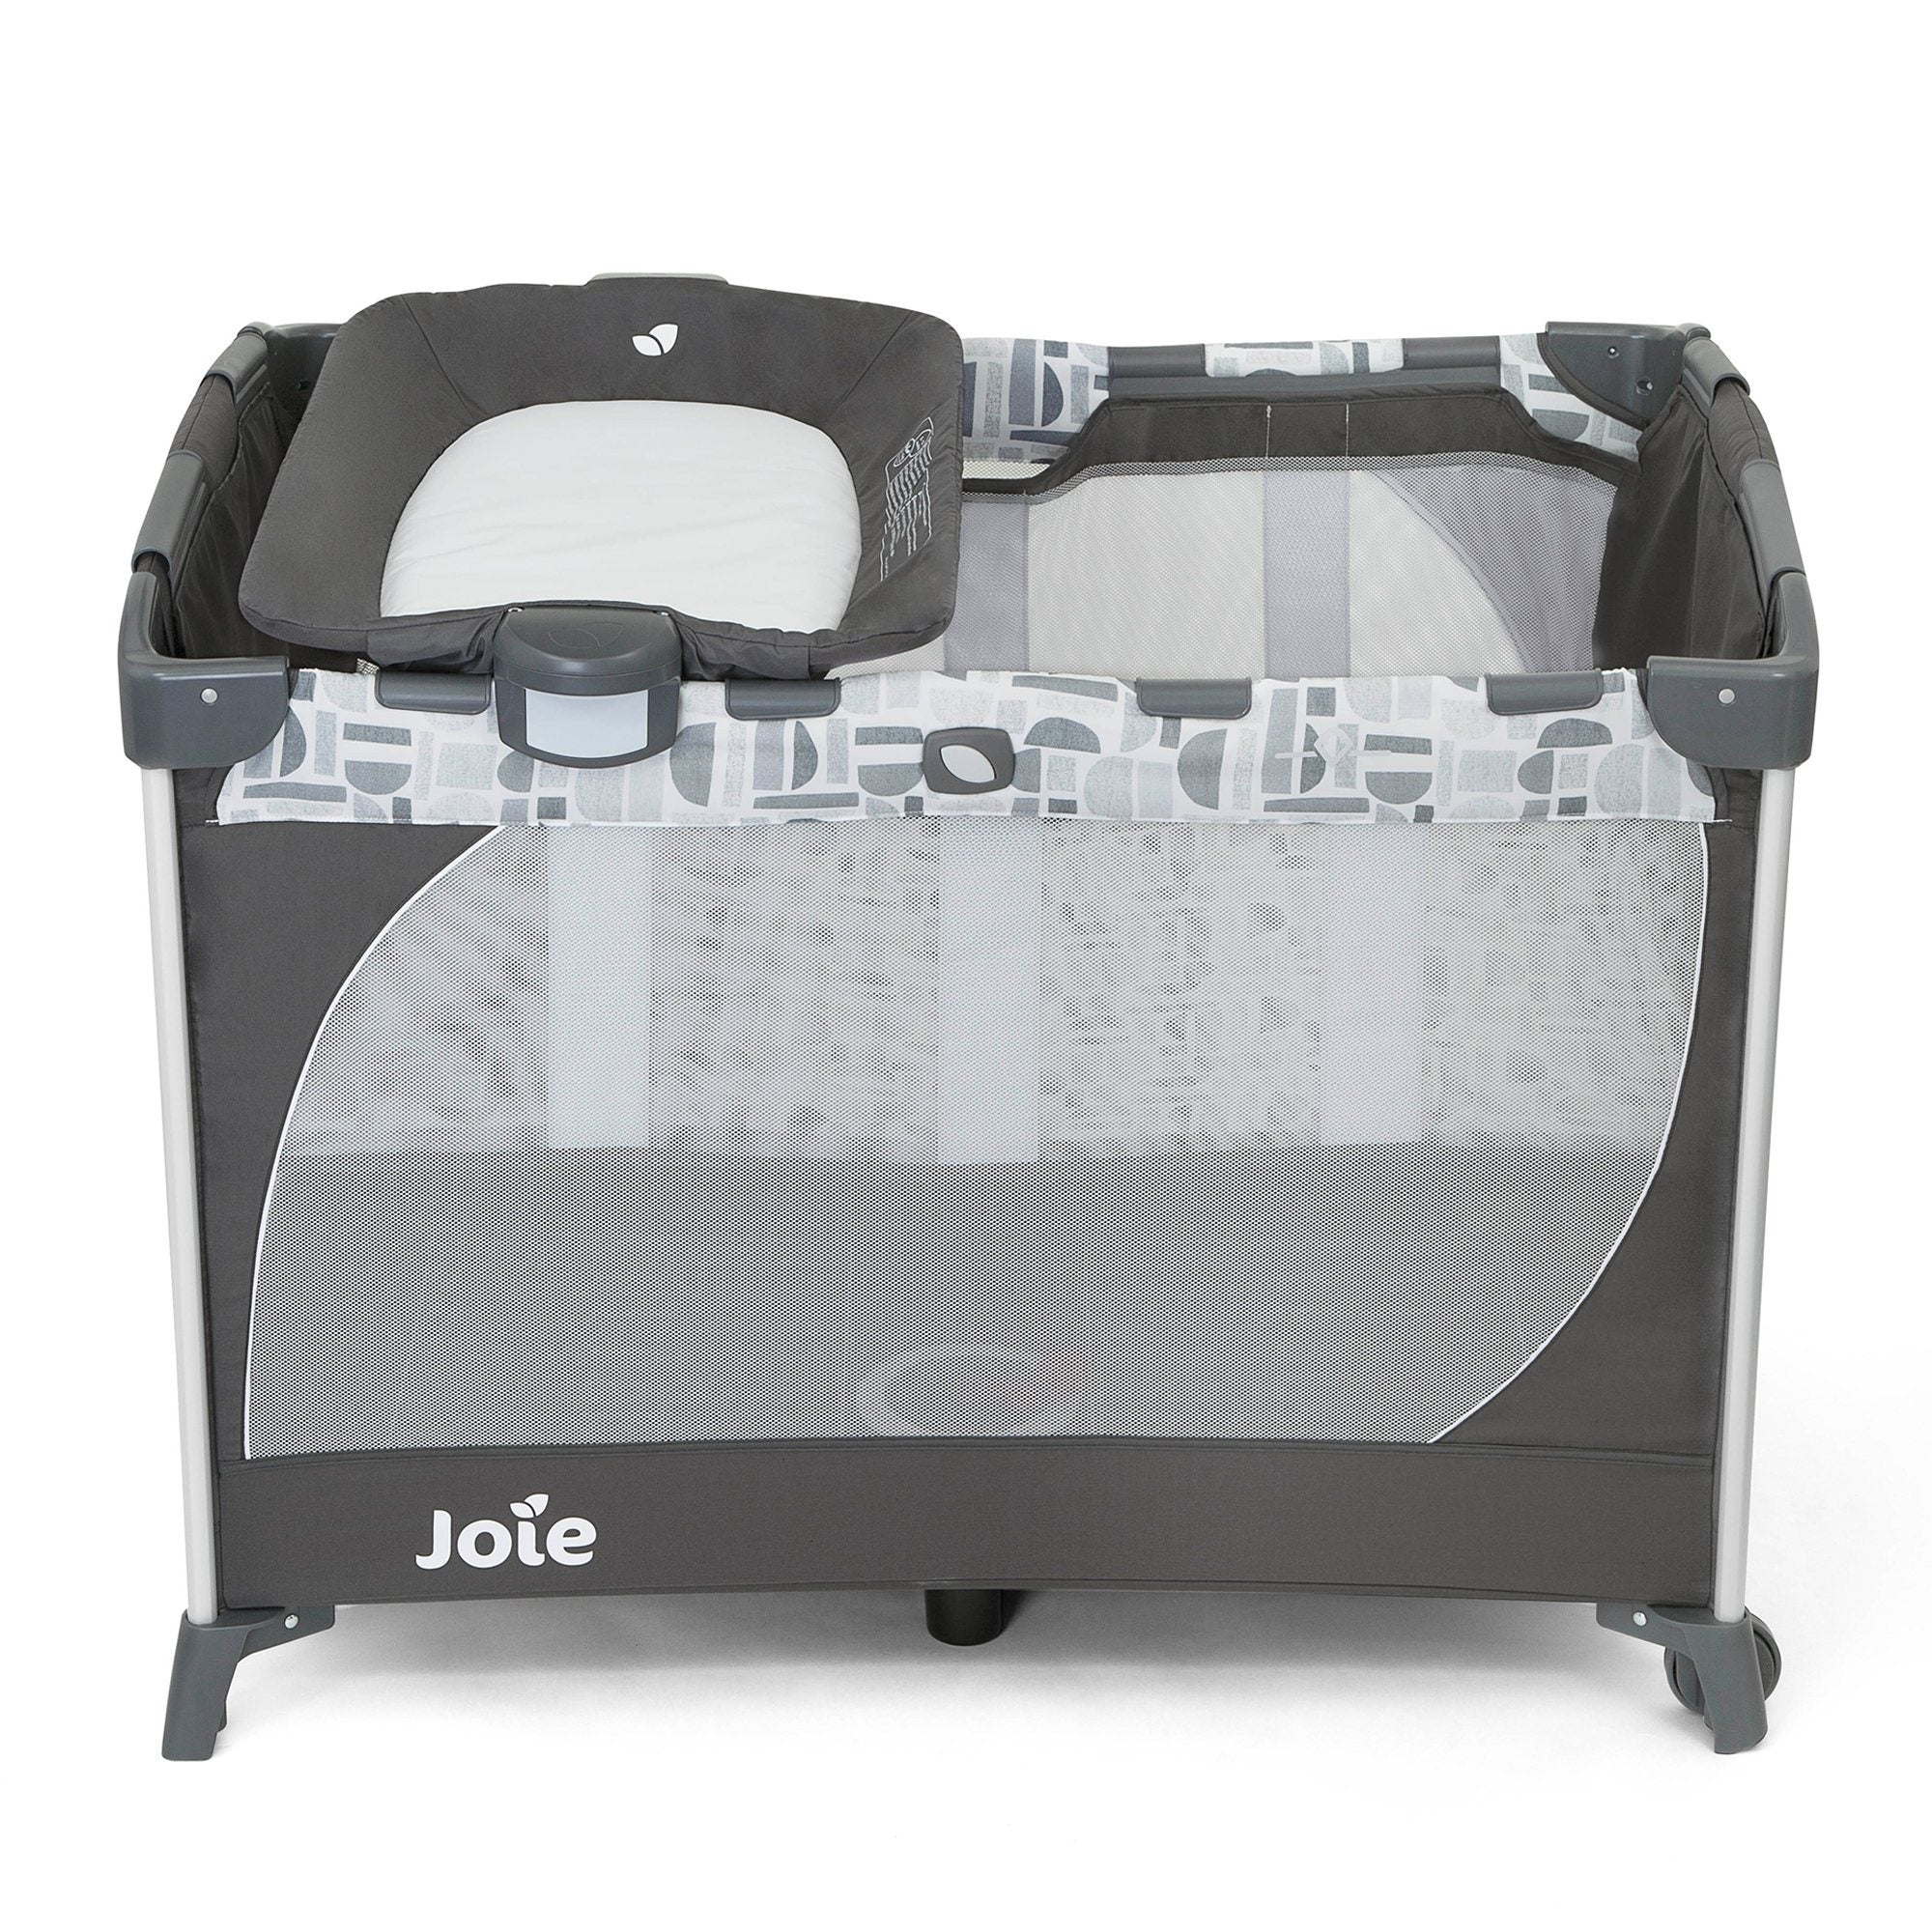 Joie Commuter Change travel cot - Logan - Pushchair Expert